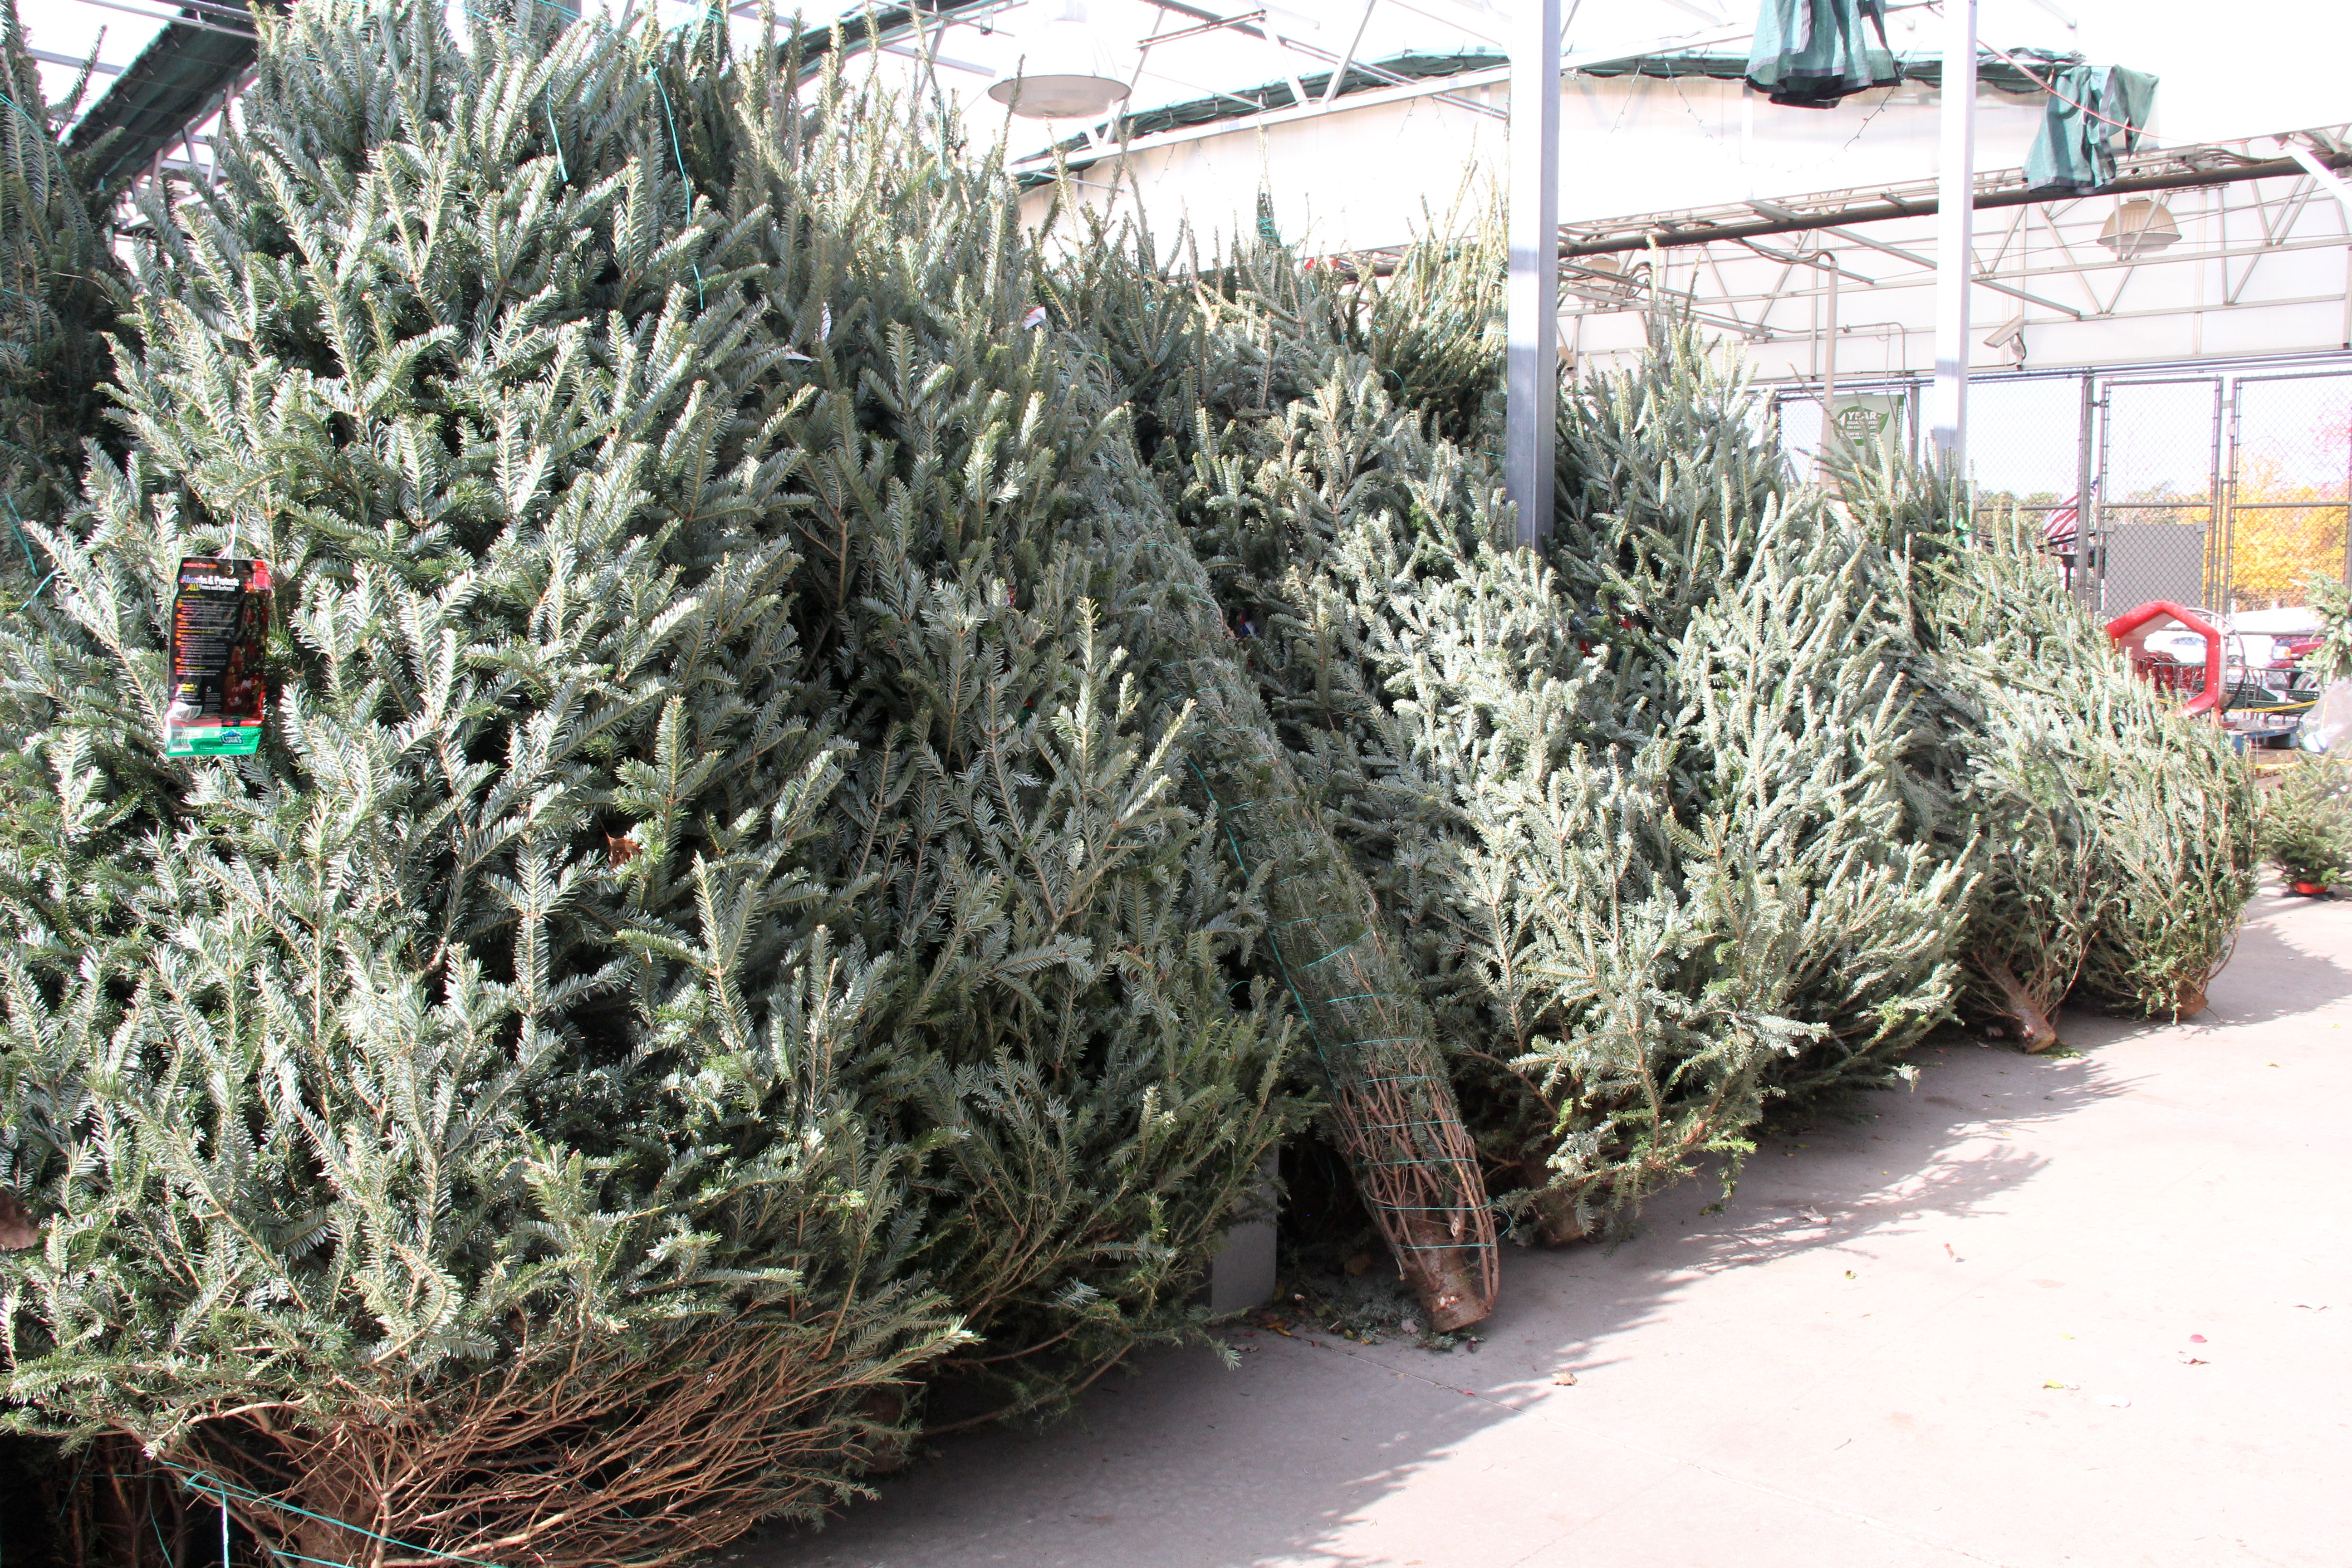 Freshly cut Christmas trees lined up for purchase at the Lowe's Home Improvement store in Griffin, Ga.